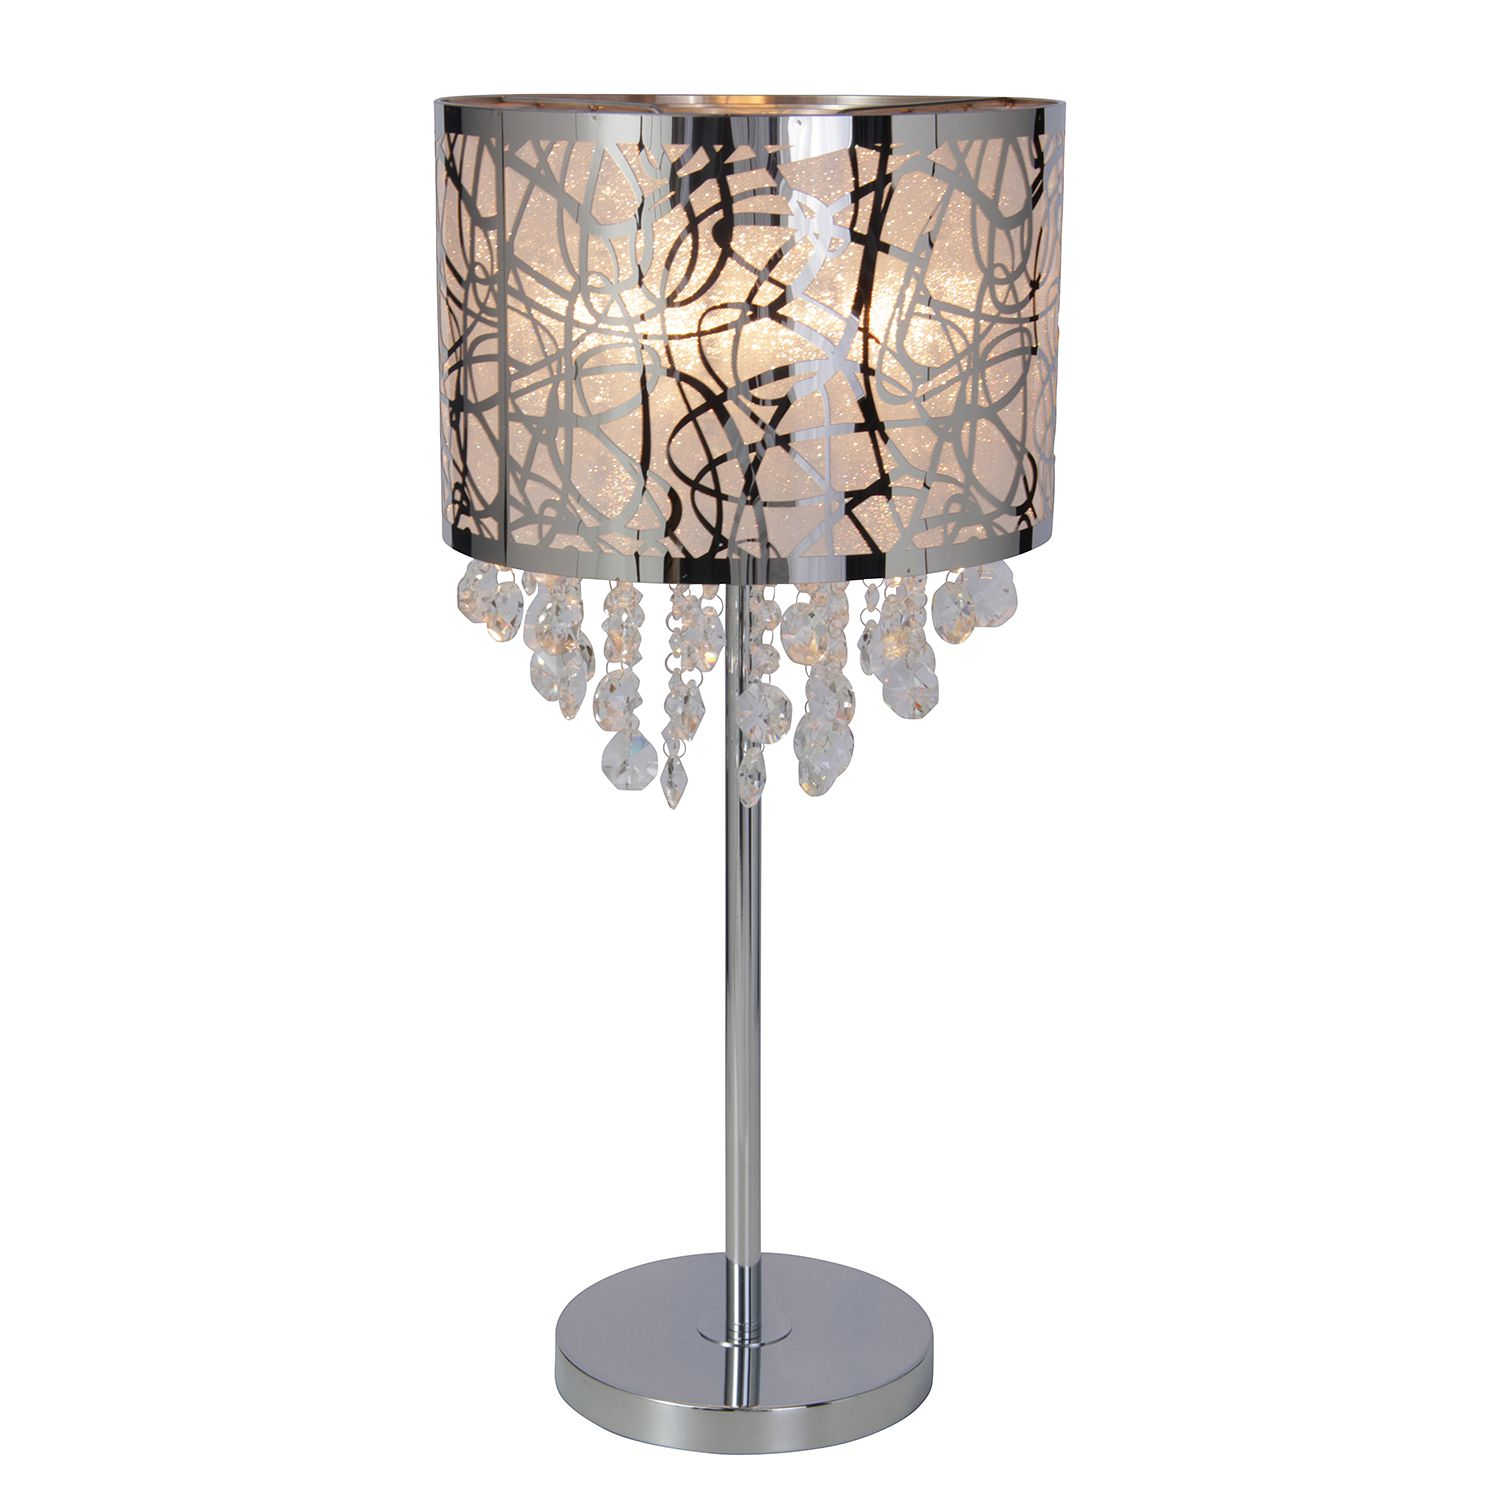 Lampe de table Crystallo par Naeve